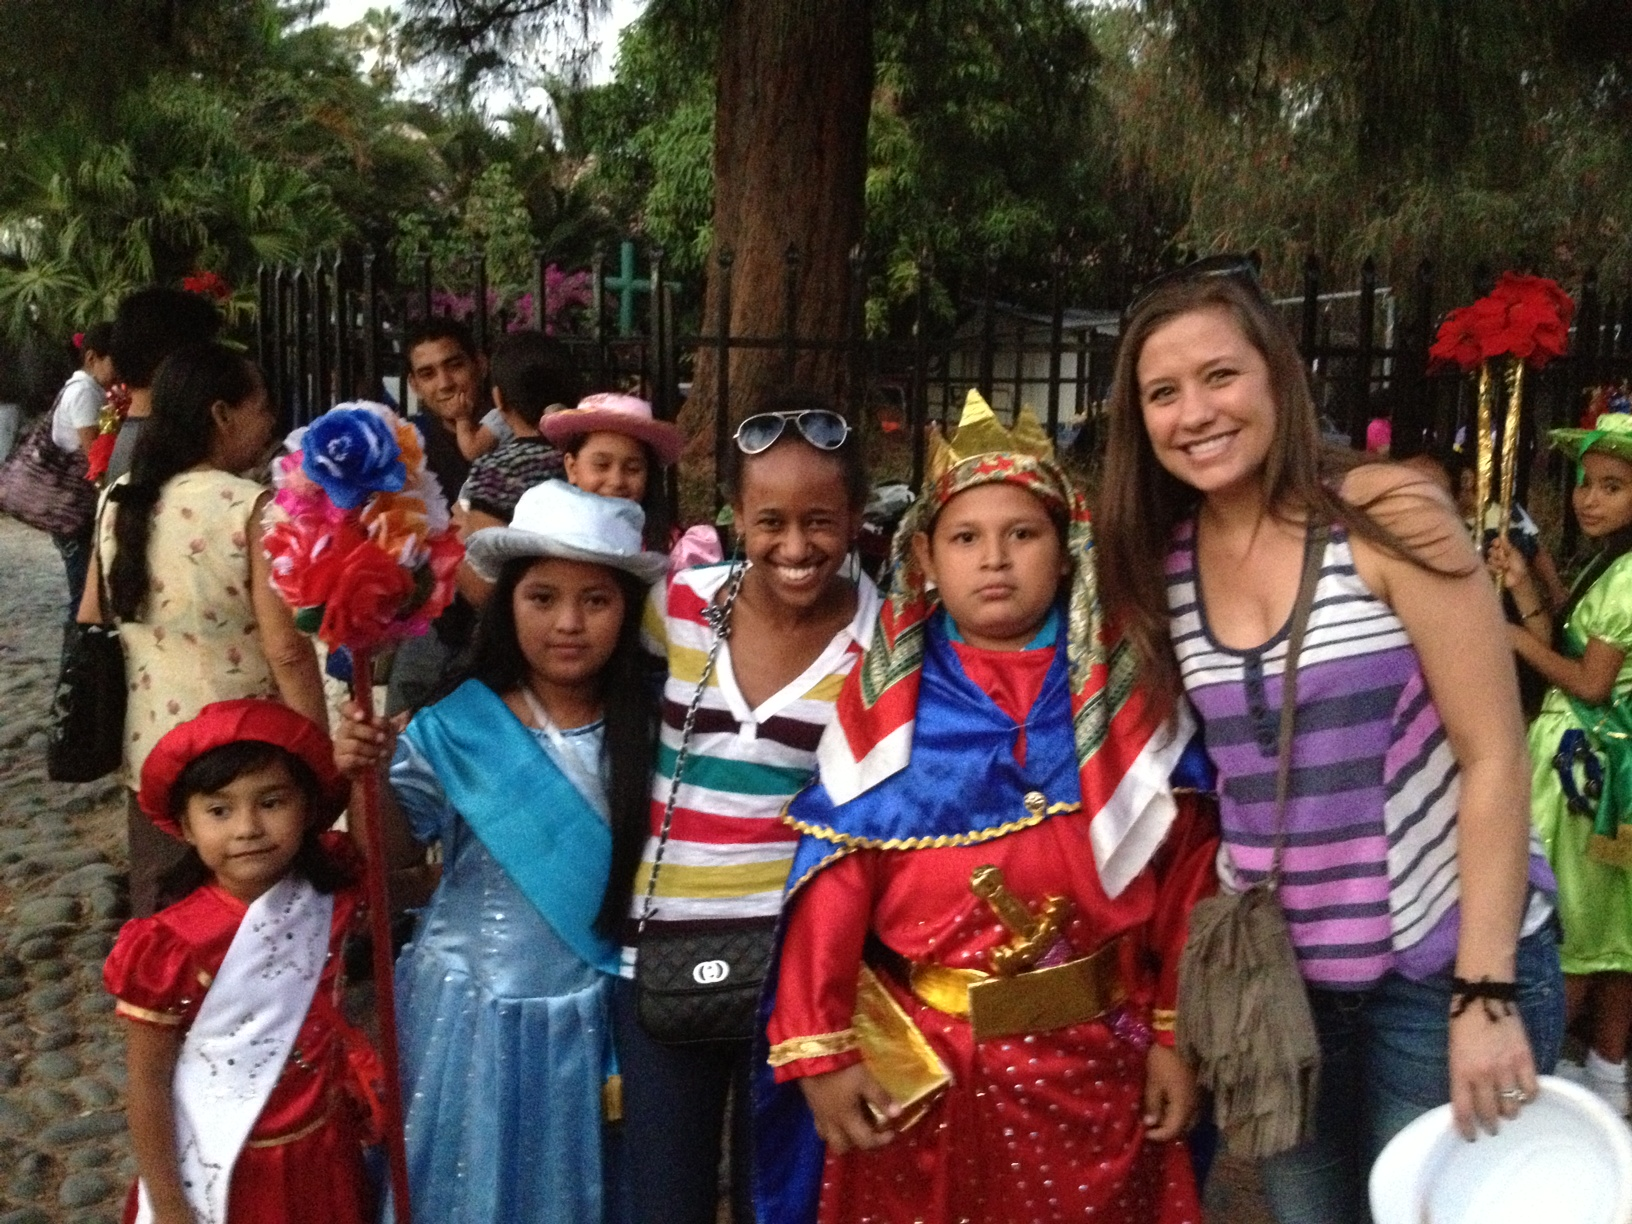 SMU students with children in indigenous costumes